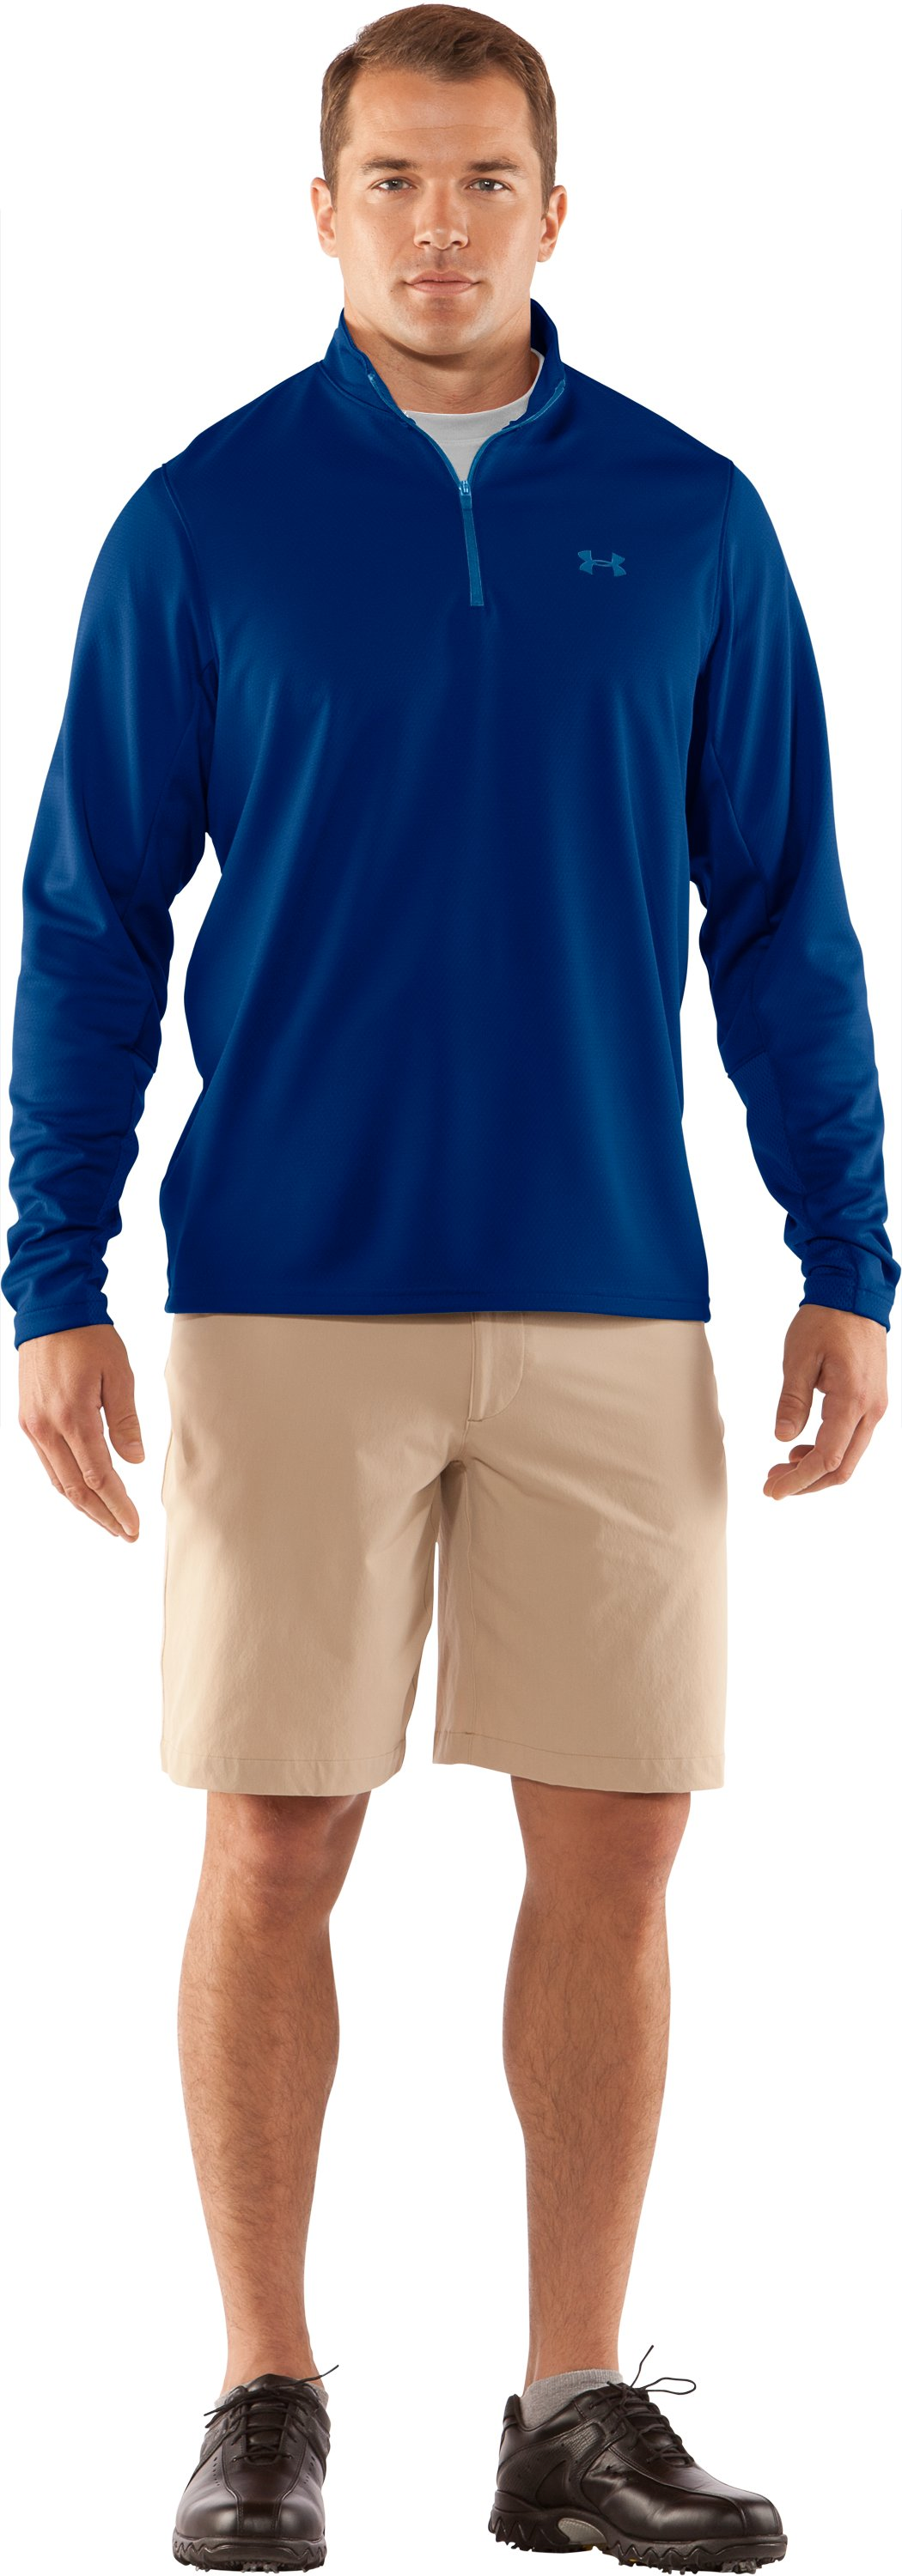 Men's AllSeasonGear® ¼ Zip Golf Jacket, EMPIRE BLUE, zoomed image